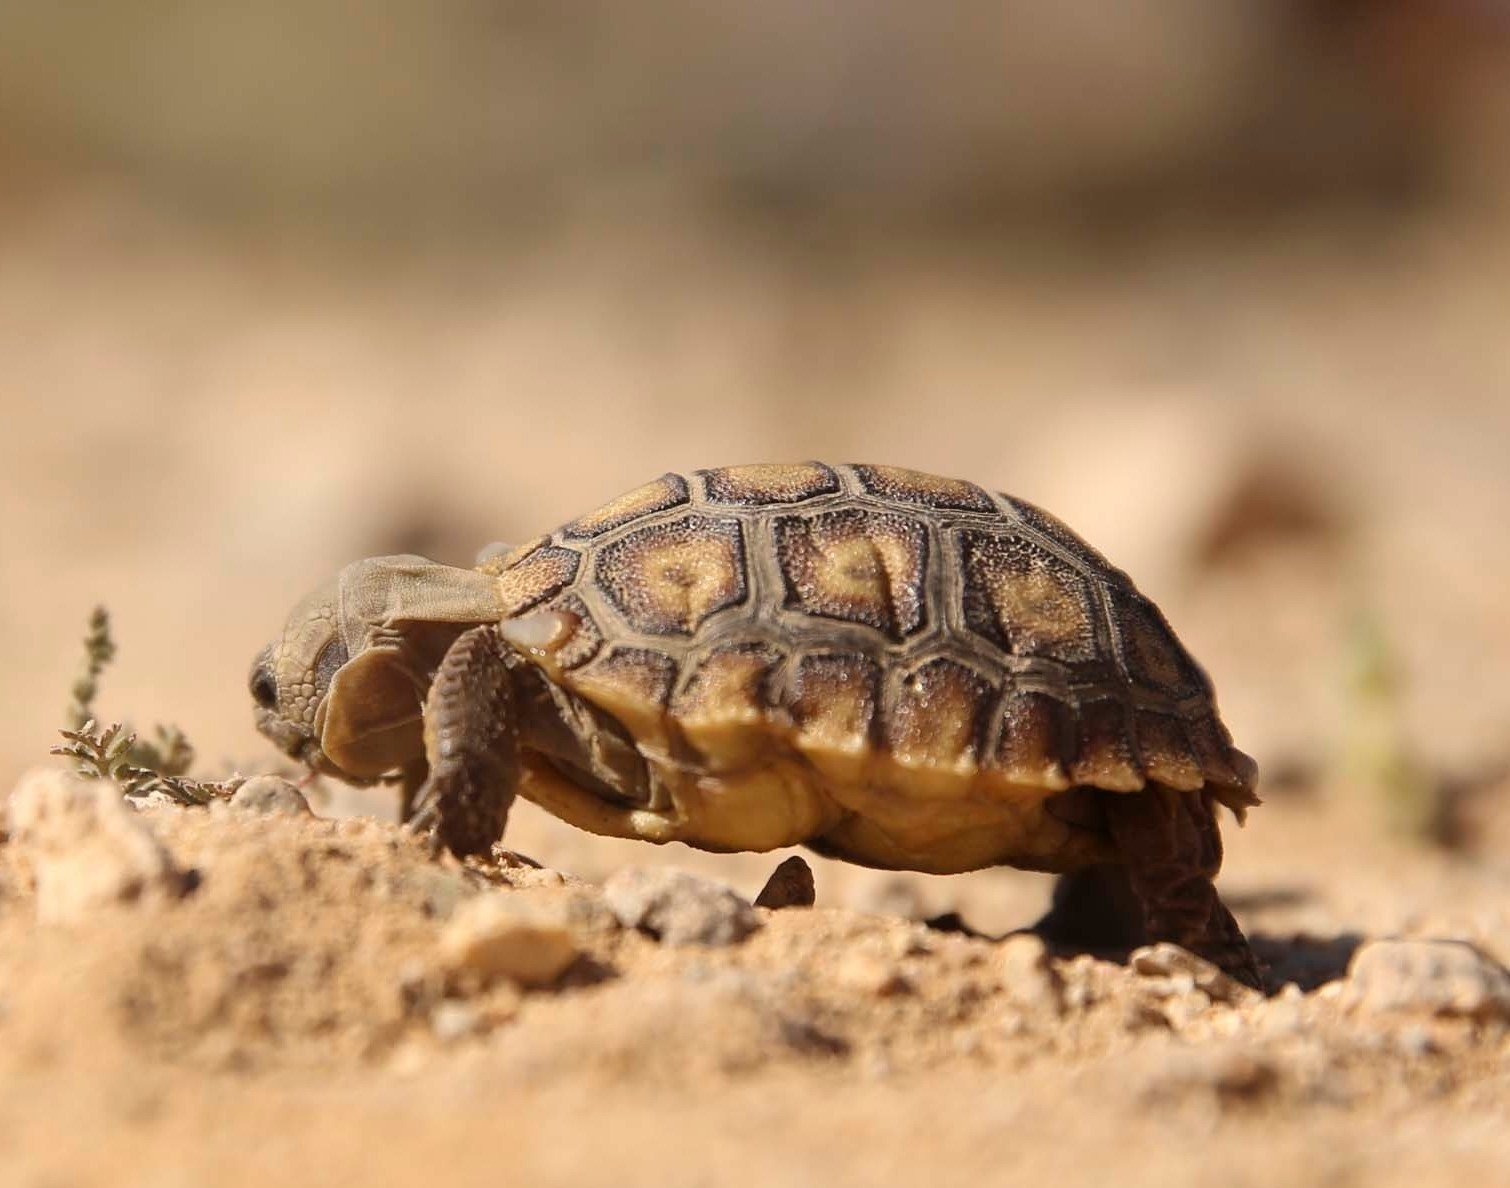 After Delay Marines Relocate Desert Tortoise To Make Way For Expanded Training